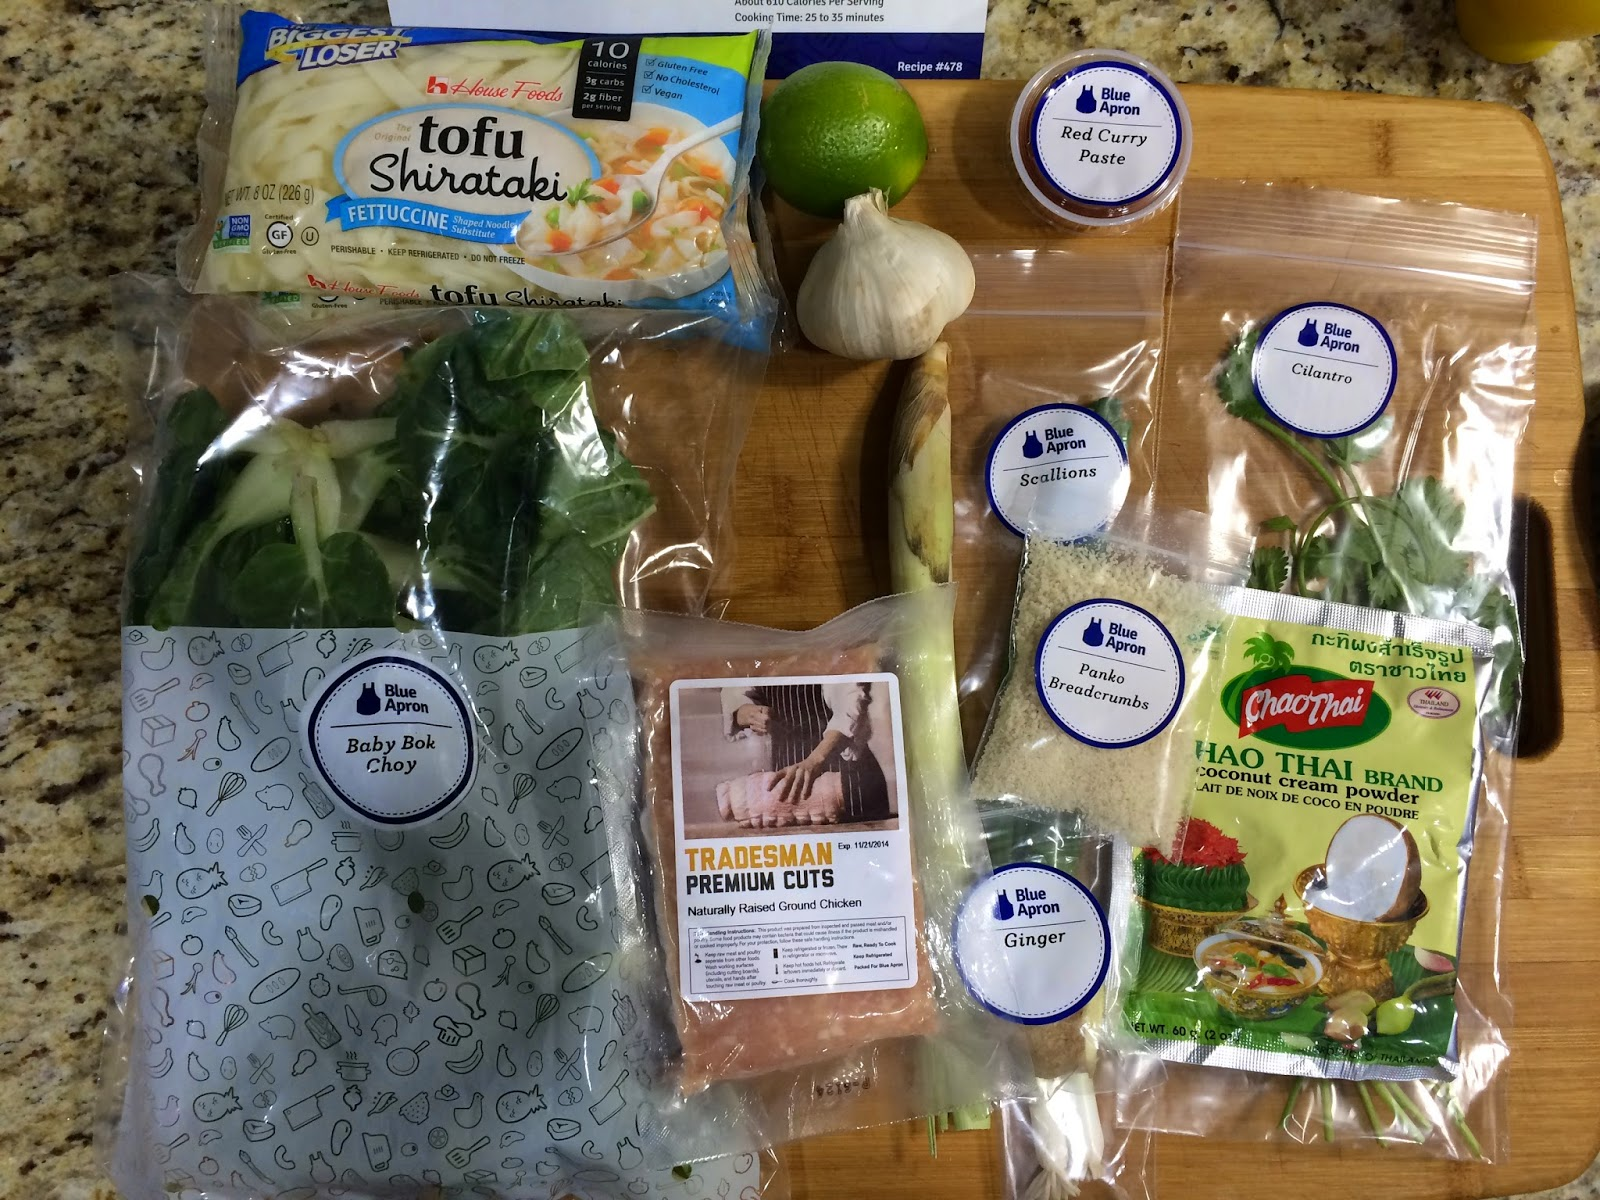 Blue apron chicken meatballs